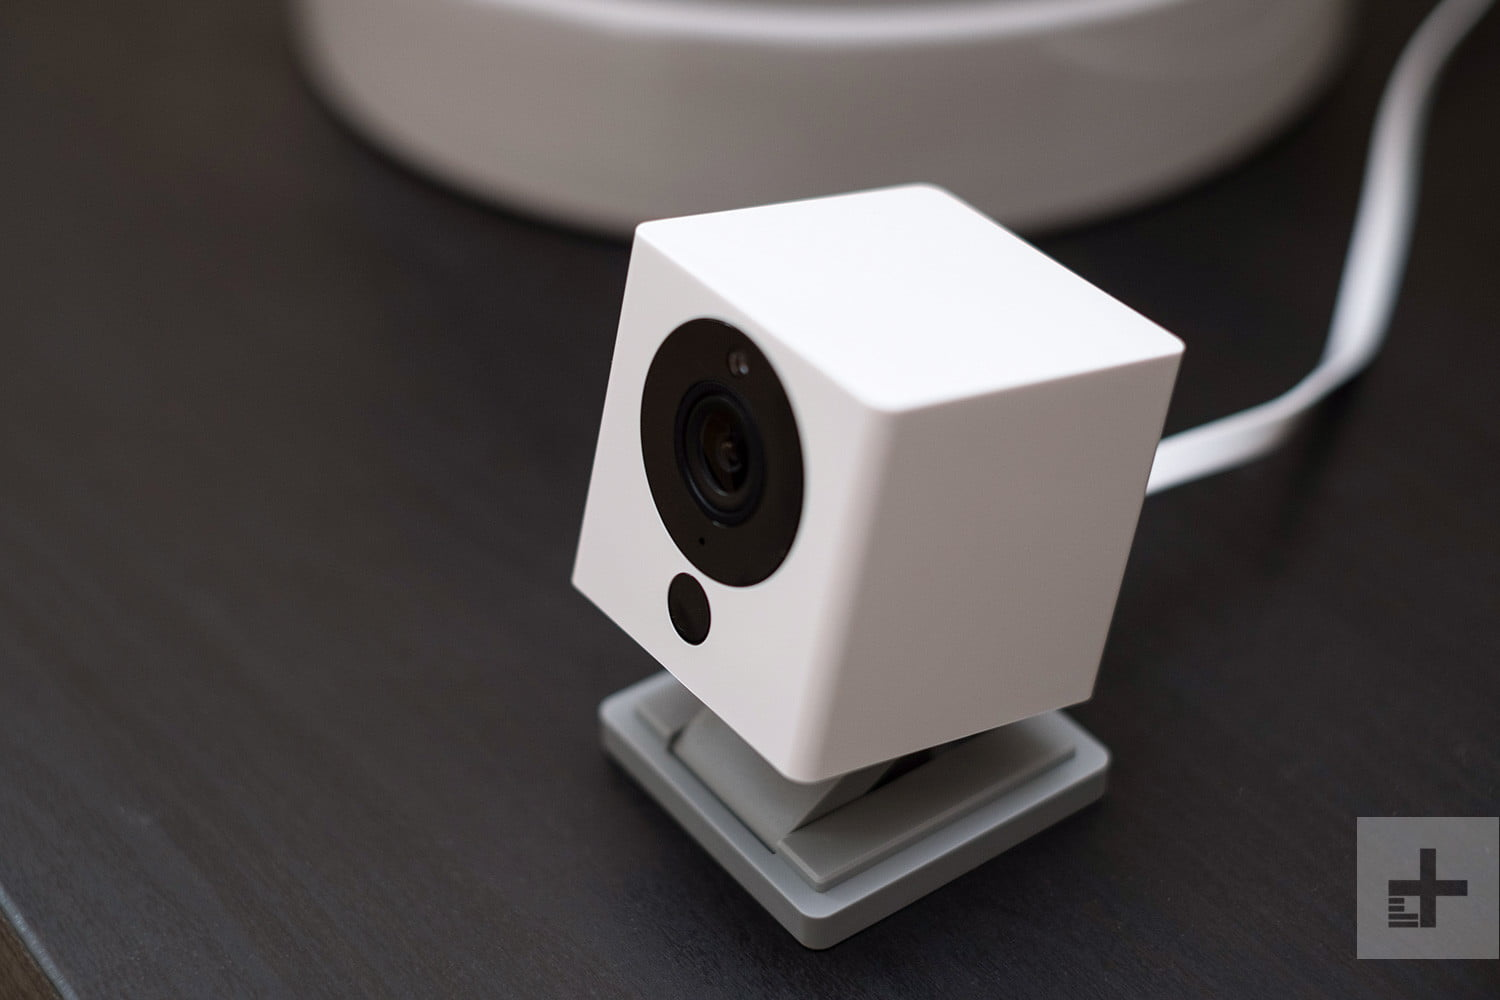 Best Indoor Security Camera 2020 The Best Home Security Cameras for 2019 | Digital Trends